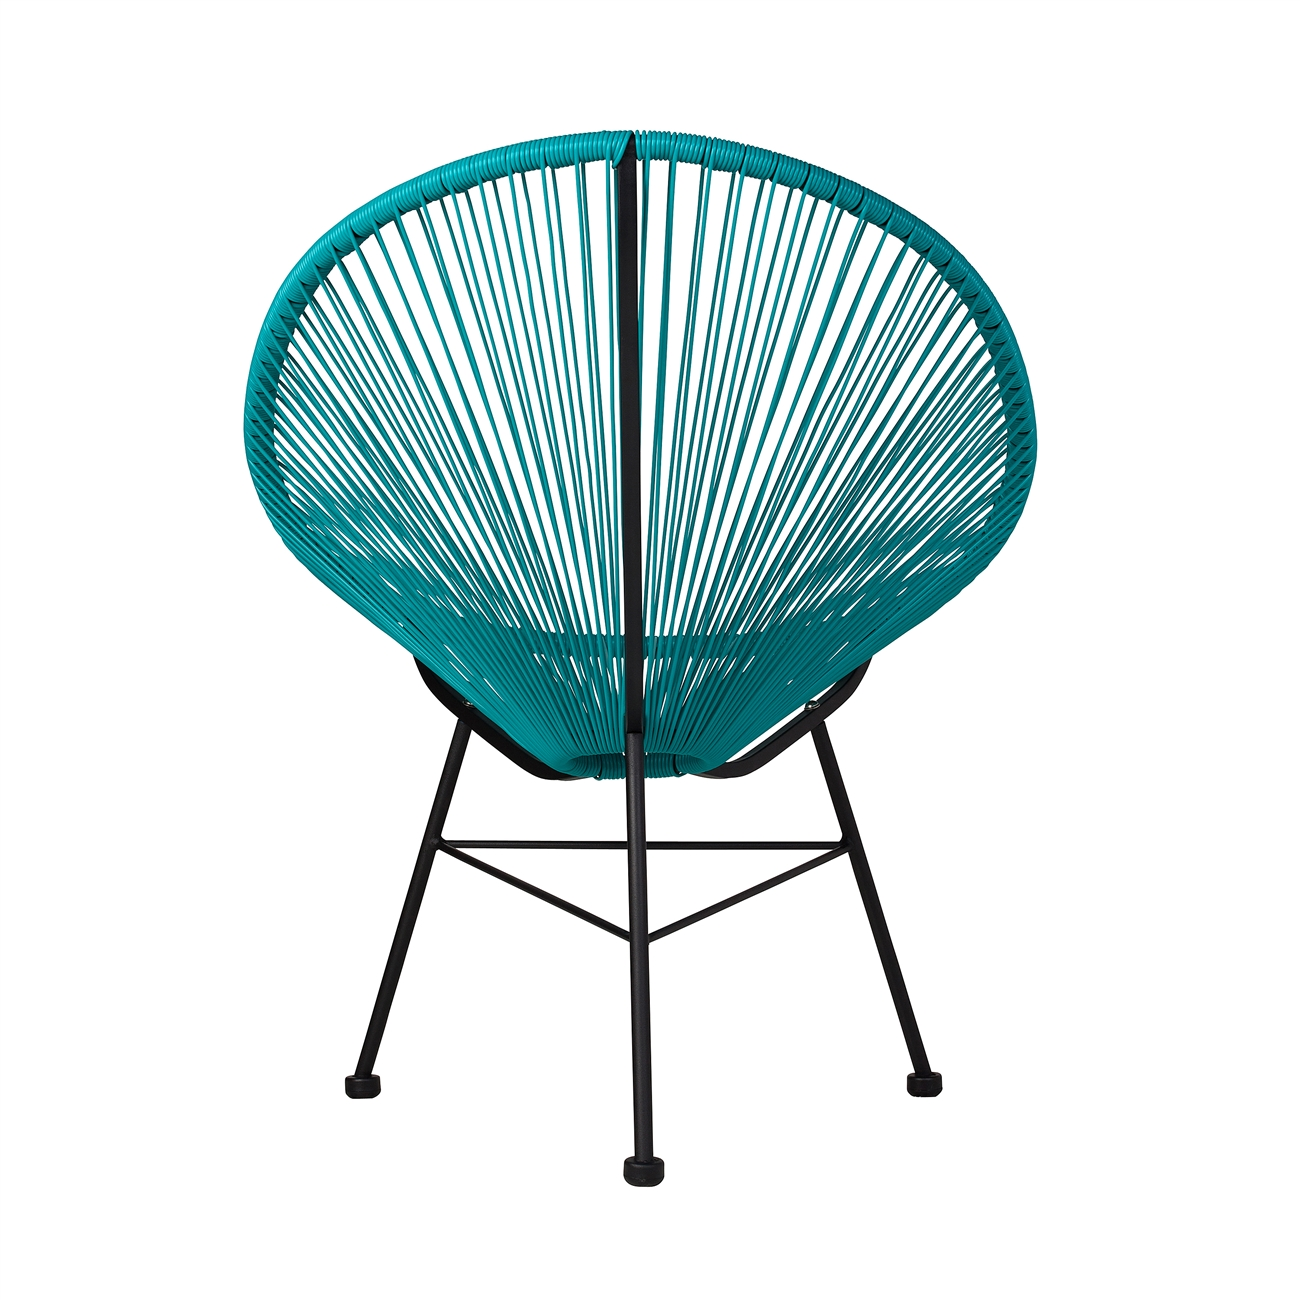 Acapulco Lounge Chair Acapulco Outdoor Lounge Chair Blue The Khazana Home